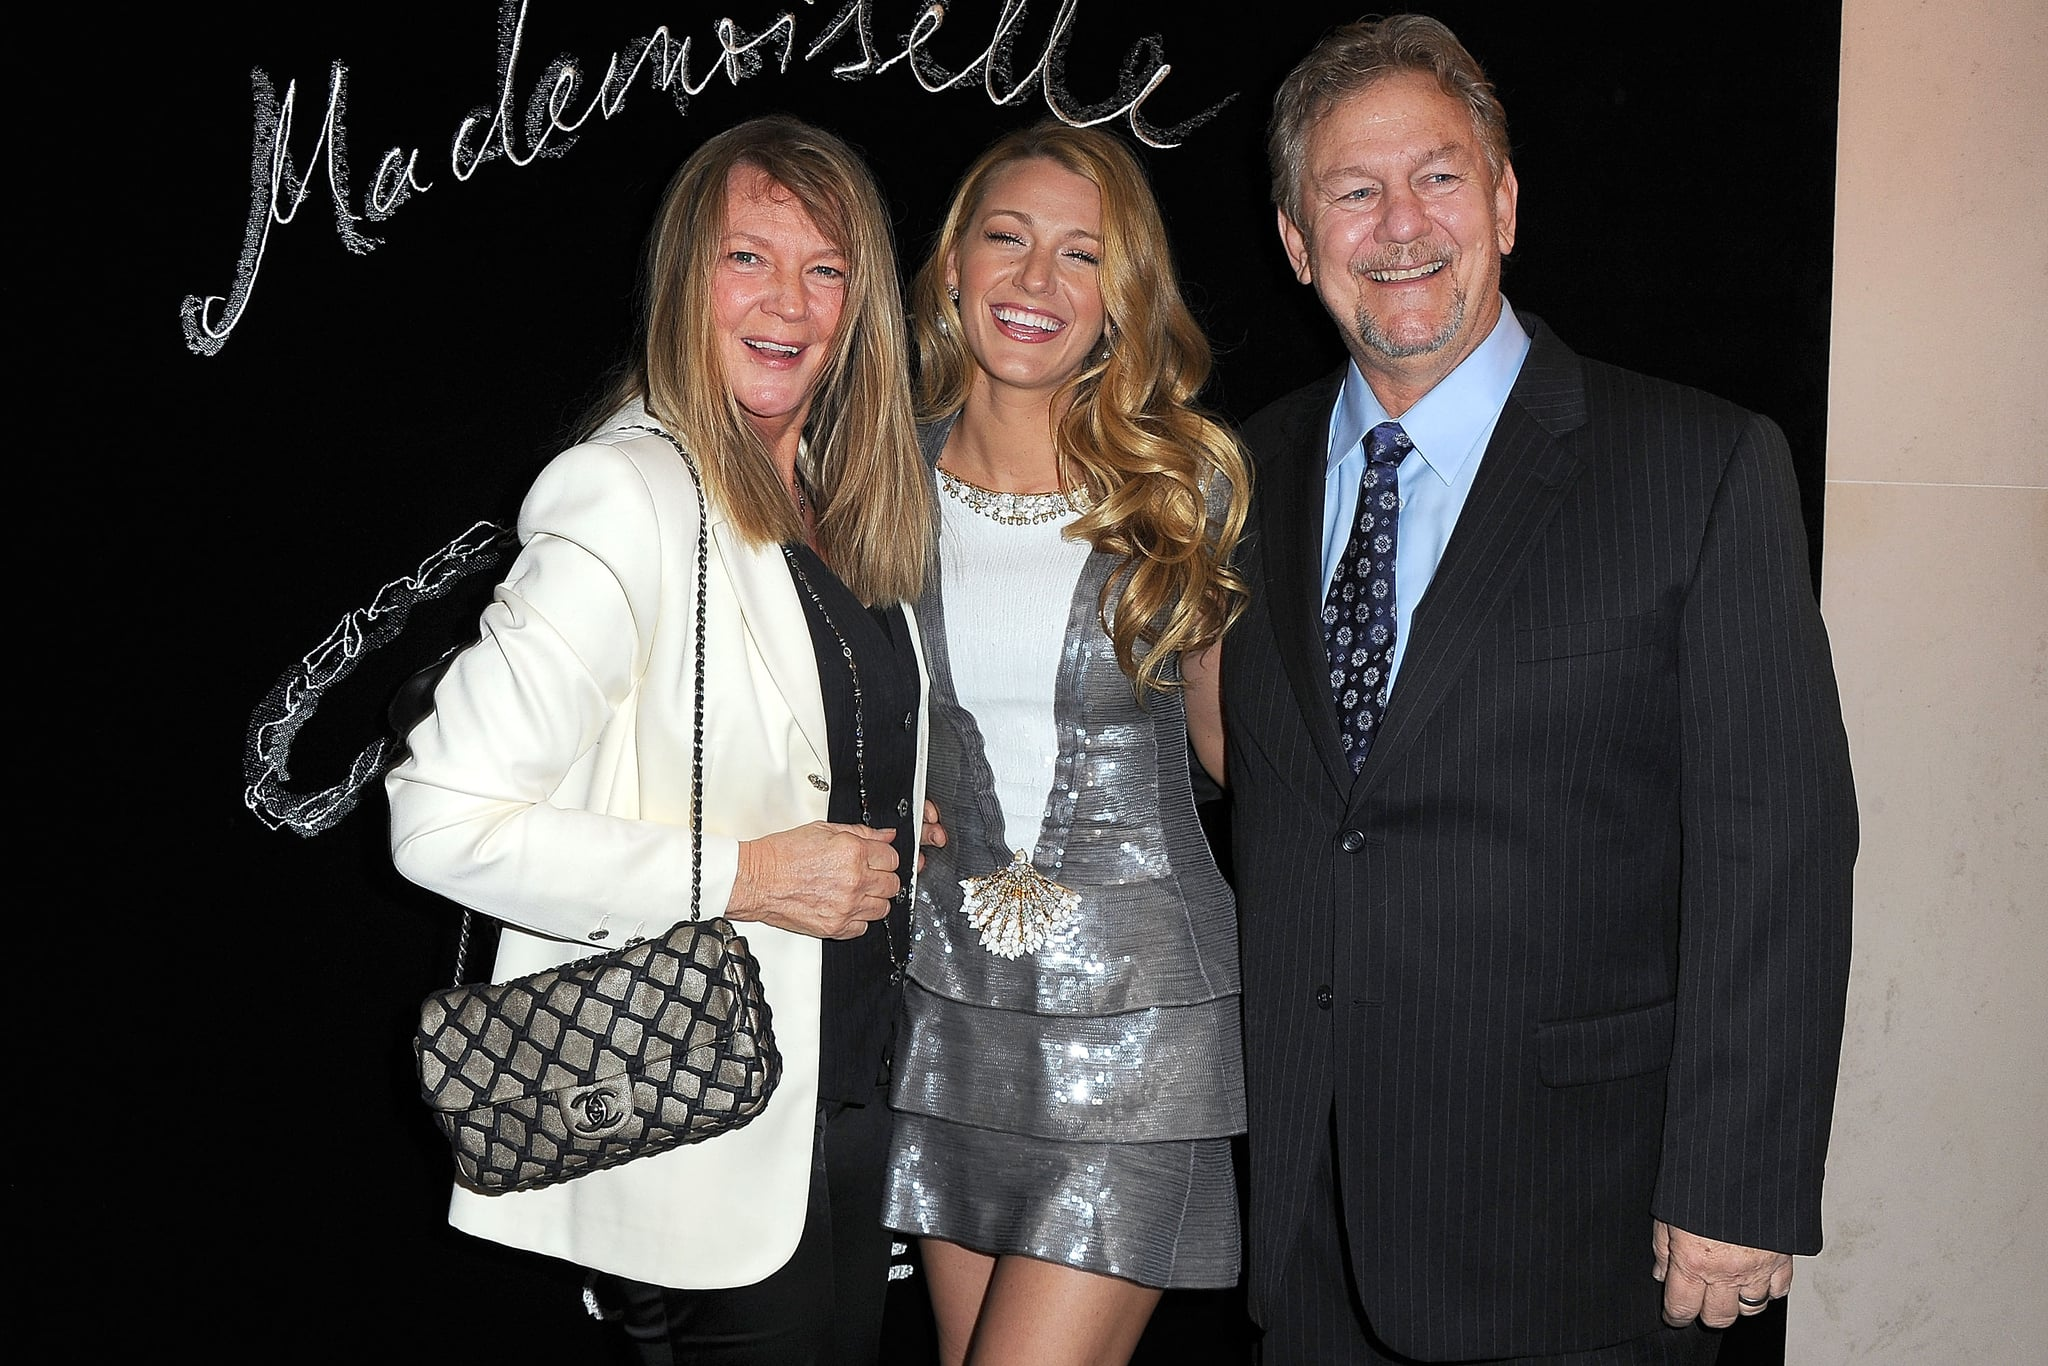 With Elaine and Ernie Lively — who we're guessing have to be her proud parents. Cute!